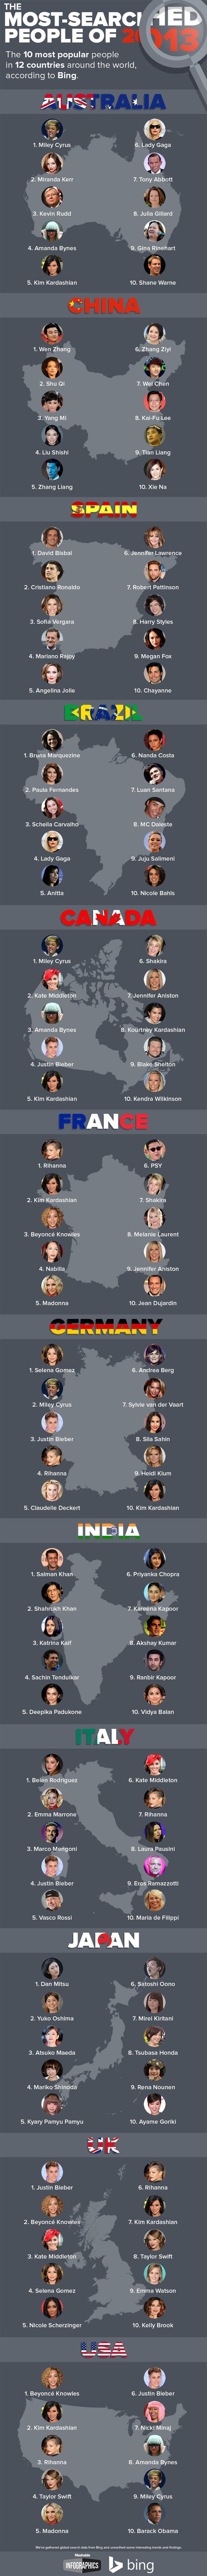 In the infographic below, you'll see the top 10 most-searched people across 12 countries: Australia, China, Spain, Brazil, Canada, France, Germany, India, Italy, Japan, the UK and the U.S. From movie stars and musicians to athletes and politicians, there's a broad range of people who were top of mind in 2013.